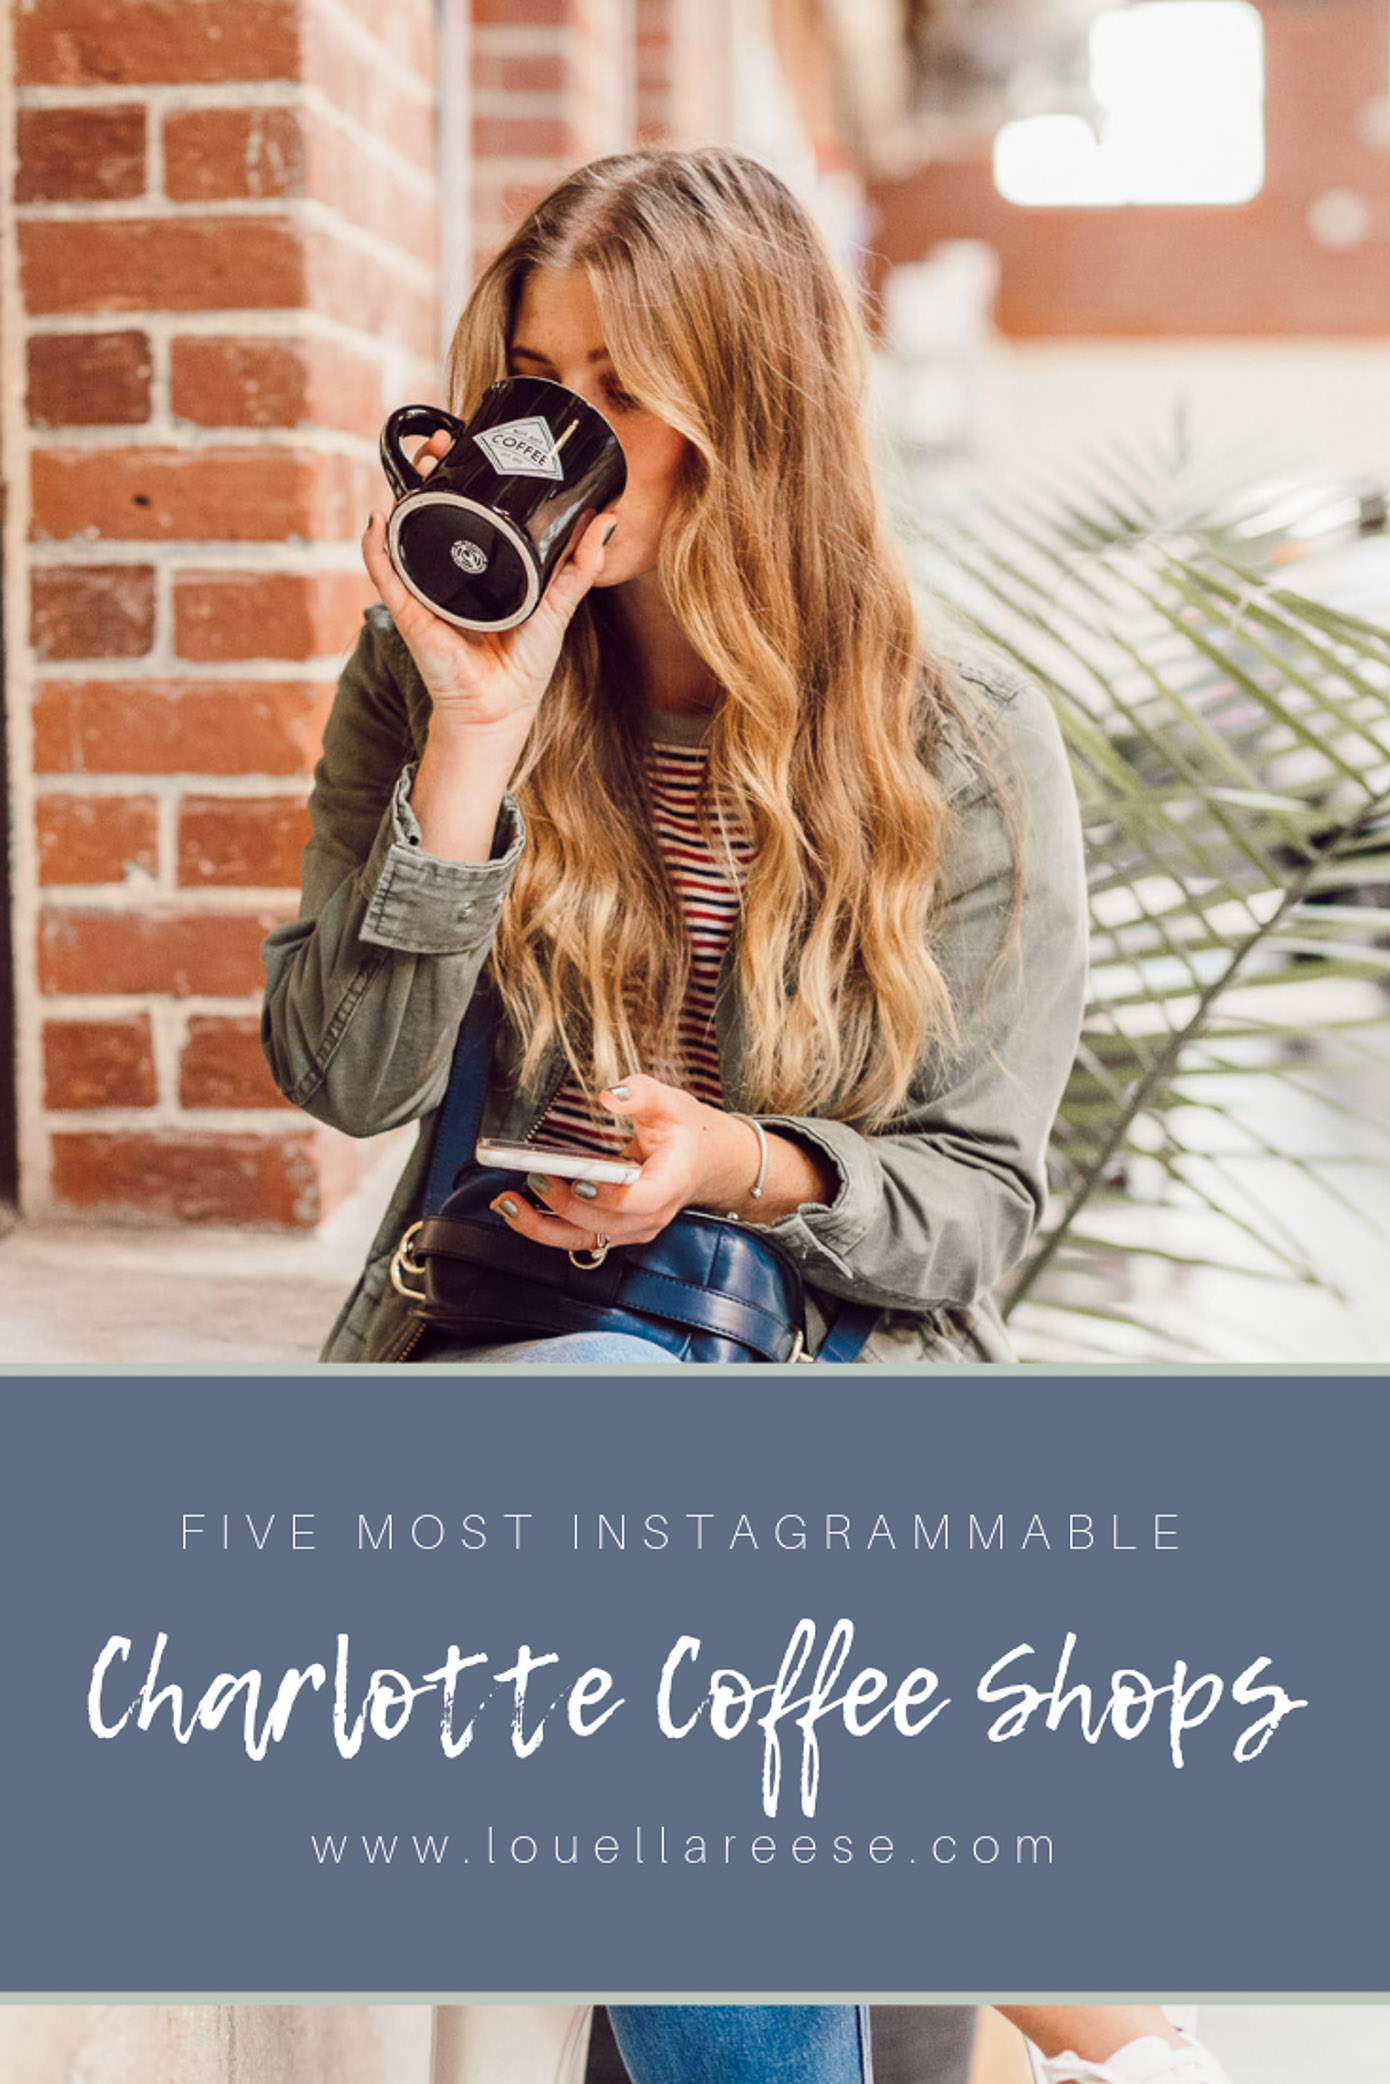 Most Instagrammable Charlotte Coffee Shops featured on Louella Reese